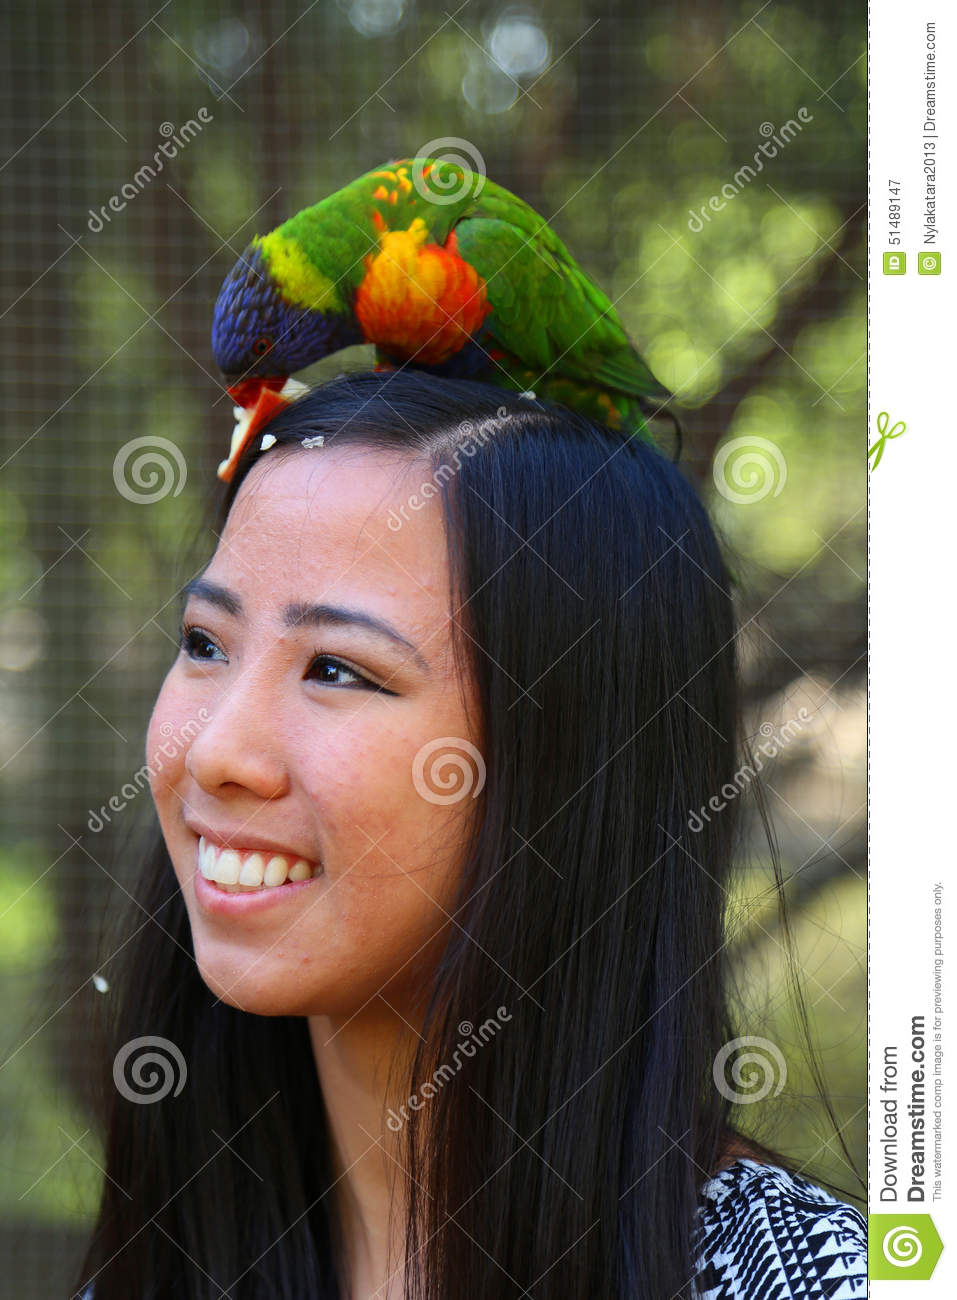 ... vibrant Lories also known as lorikeets on her head eating an apple